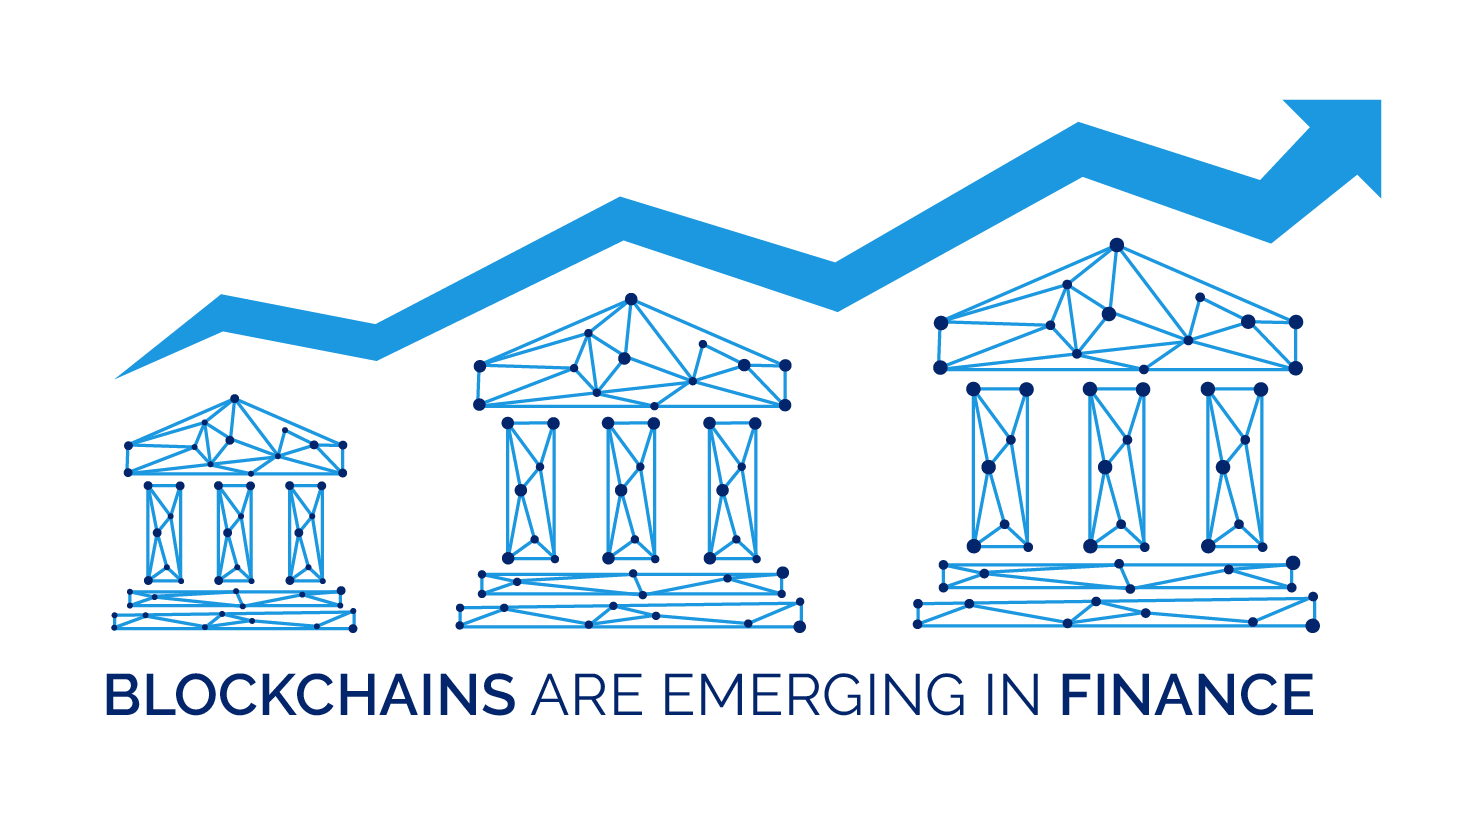 Financial clipart financial growth. Services and blockchain industry